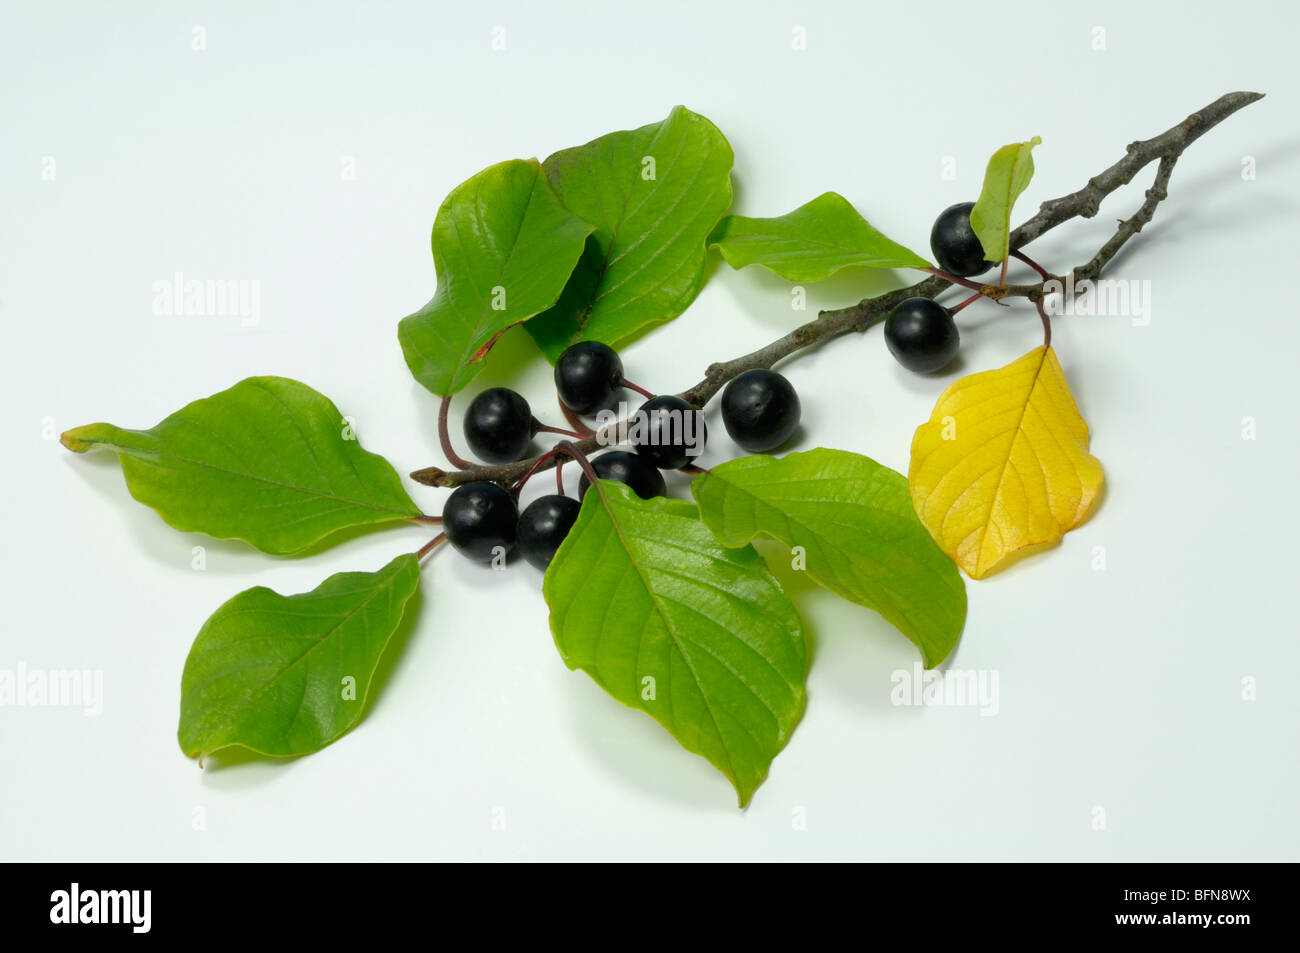 Alder Buckthorn (Frangula alnus), twig with berries, studio picture. - Stock Image